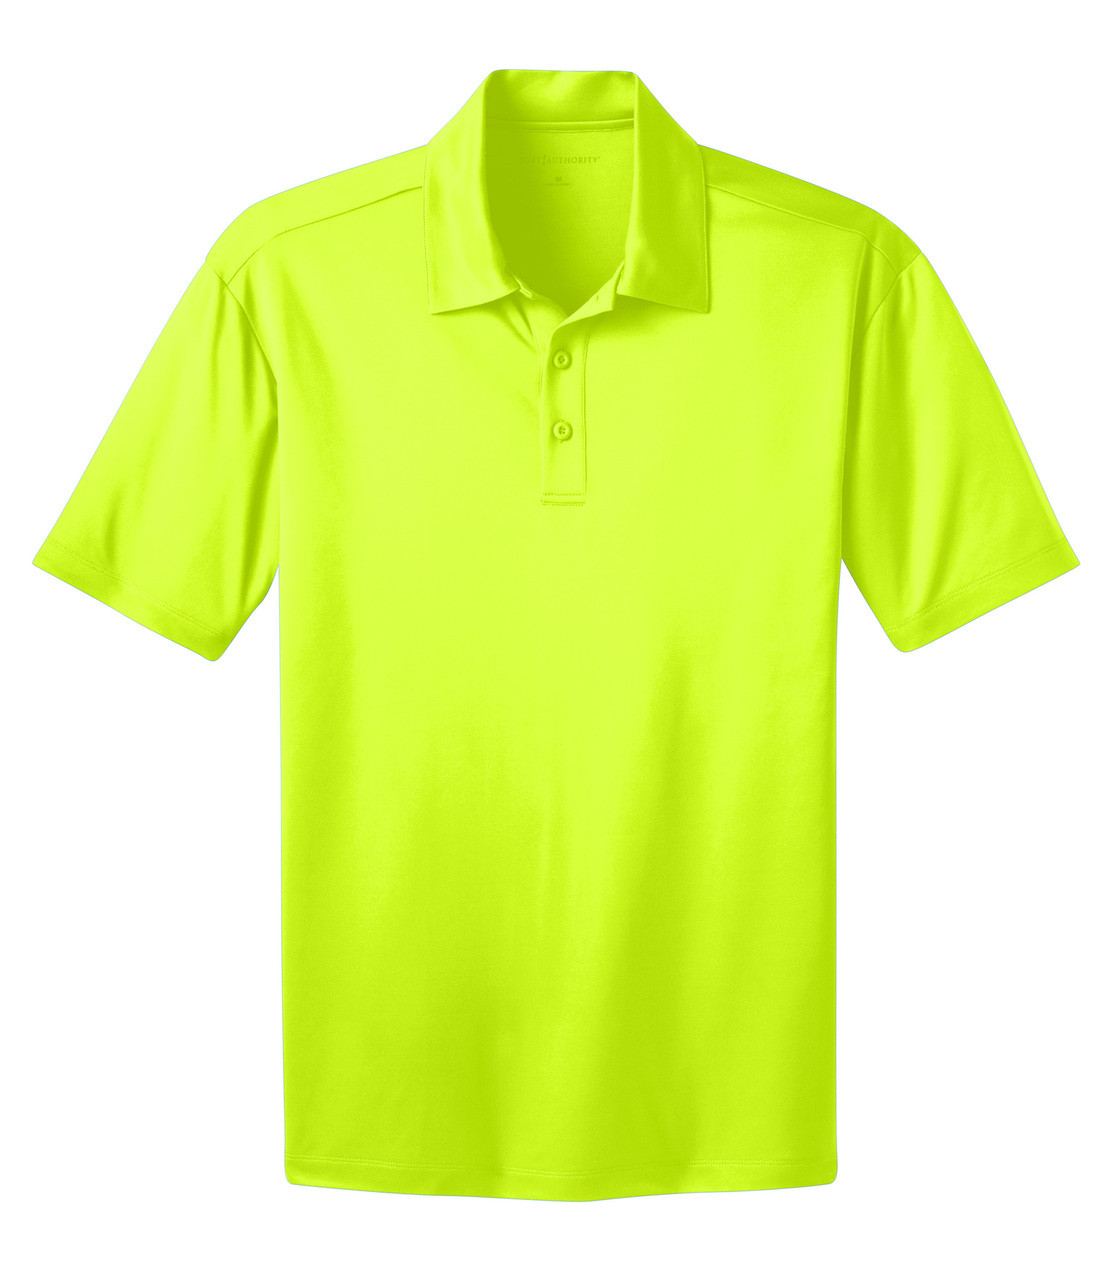 01822d47 Men's Silk Touch Golf Polo's in 16 Colors - Sizes XS-4XL - JOESUSA.COM